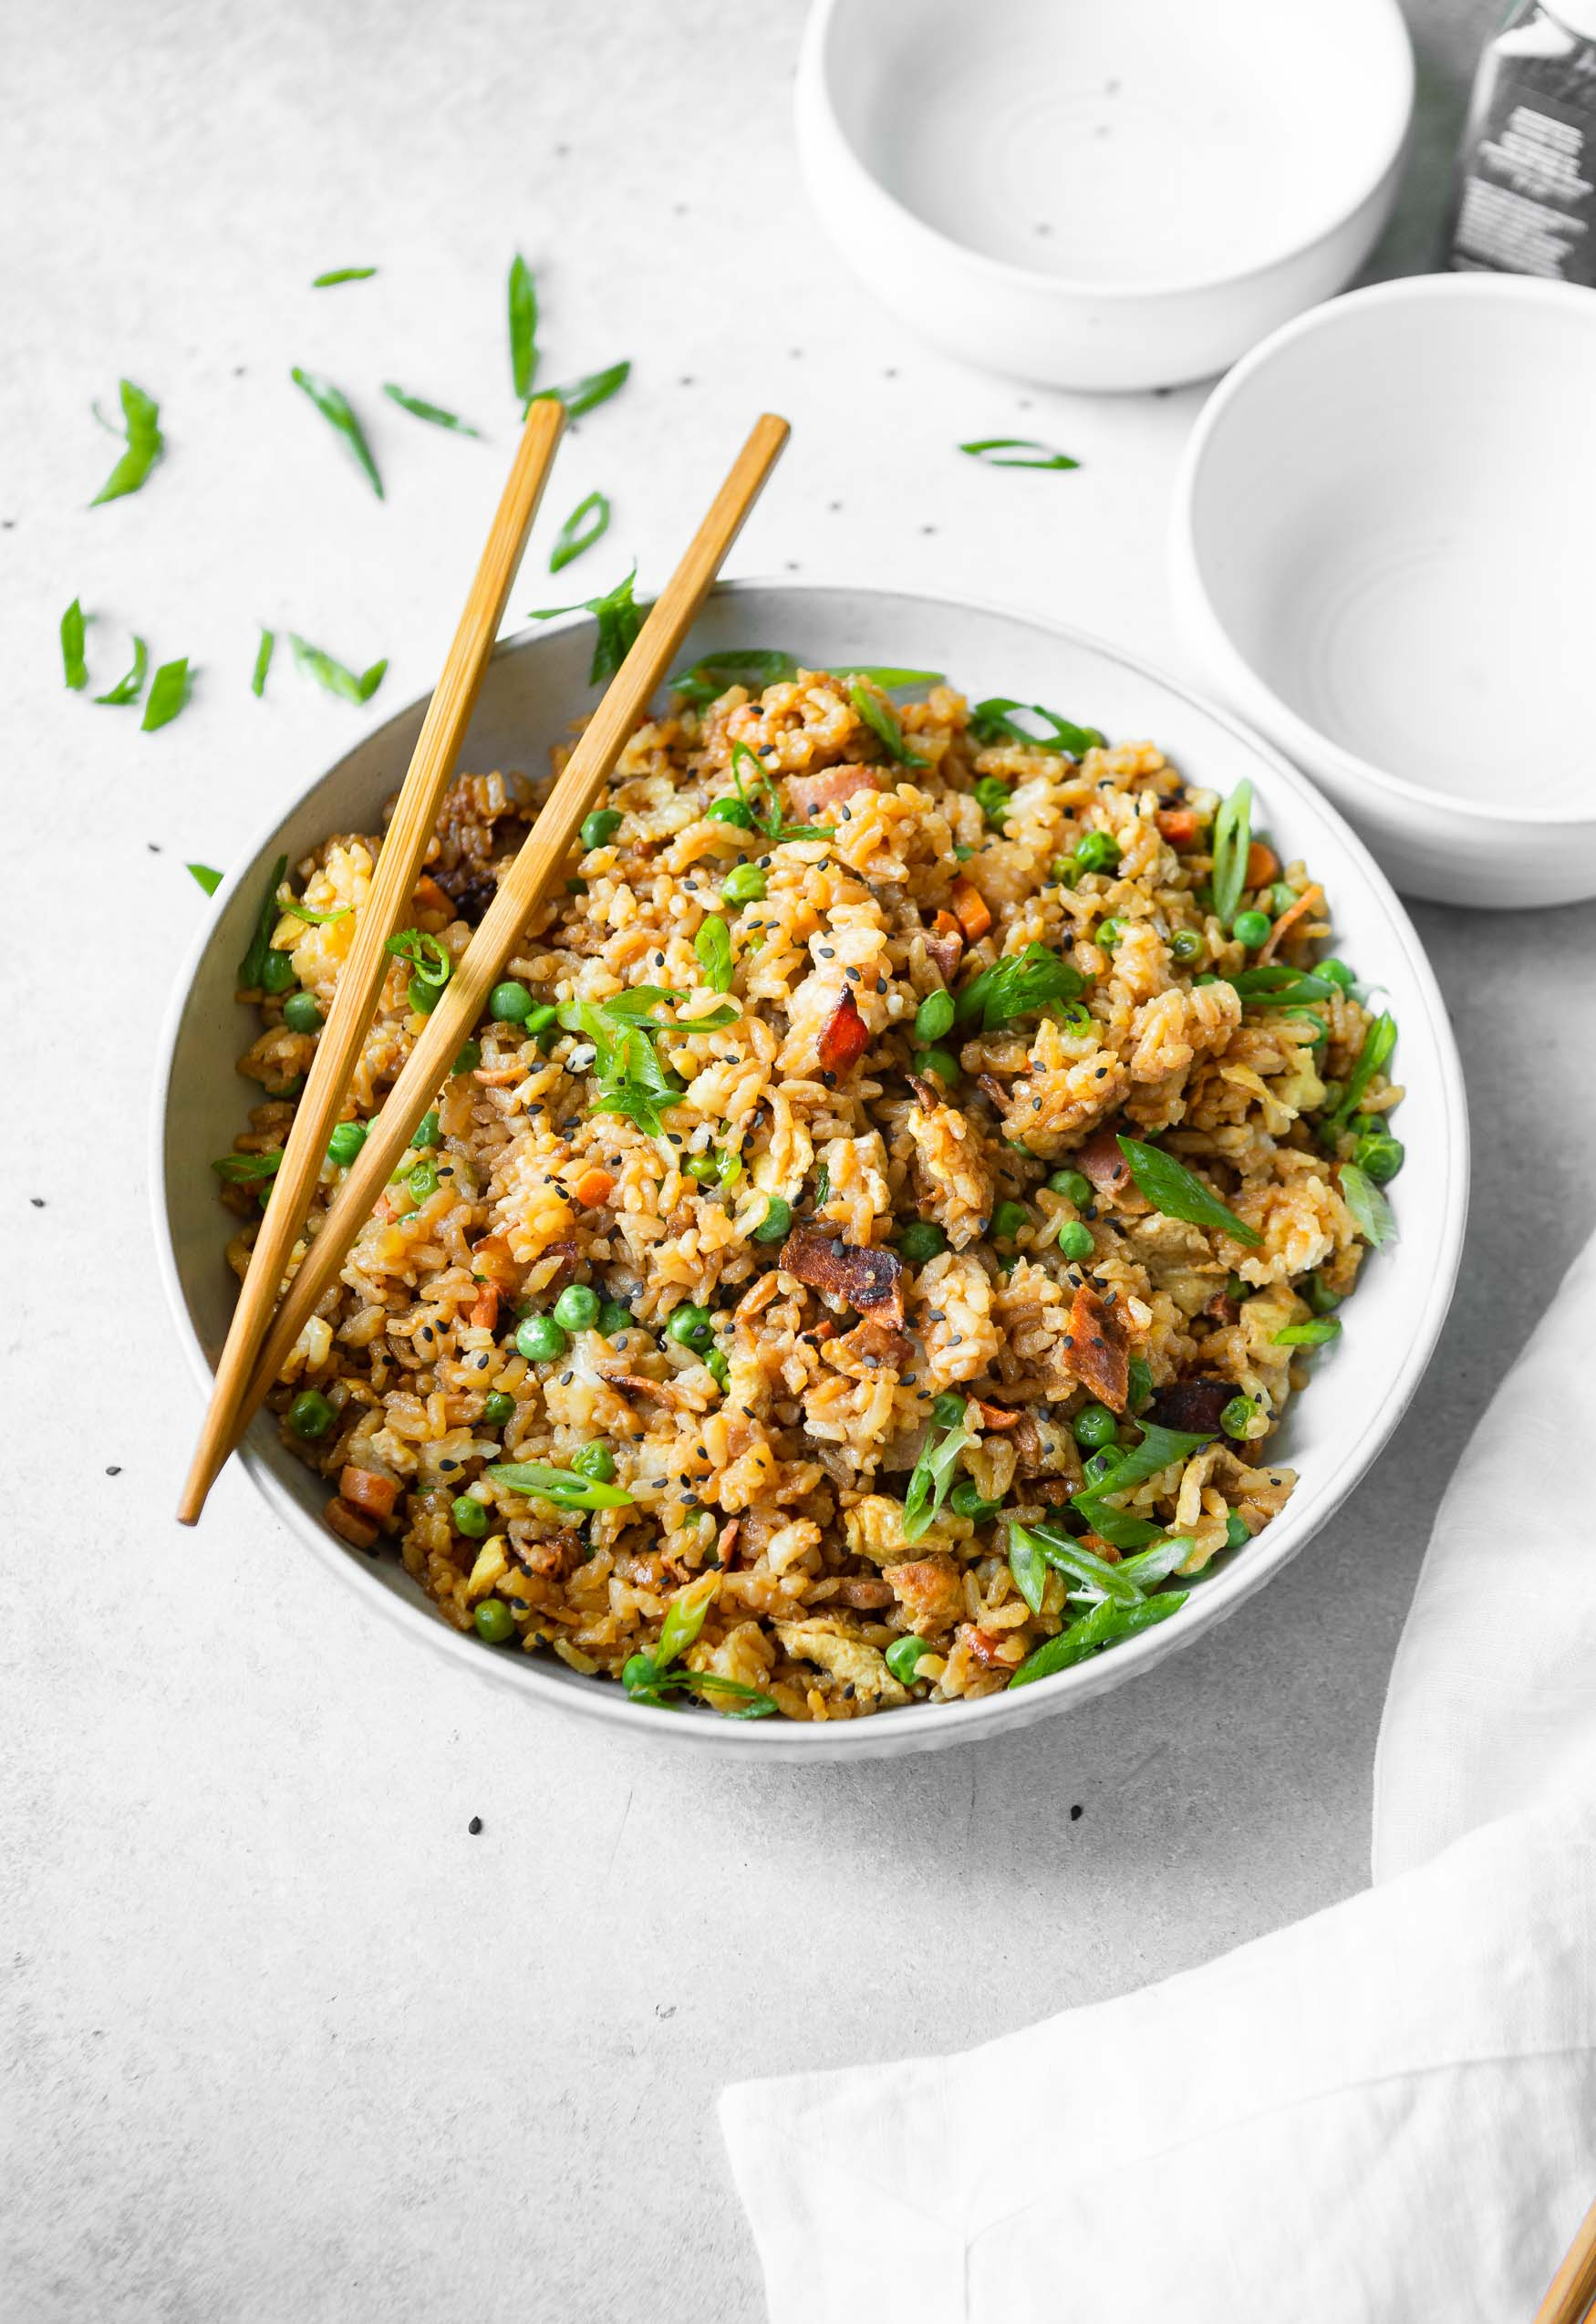 a bowl of fried rice with bacon, carrots and peas in a large white bowl with a pair of chopsticks resting on the side of the bowl.